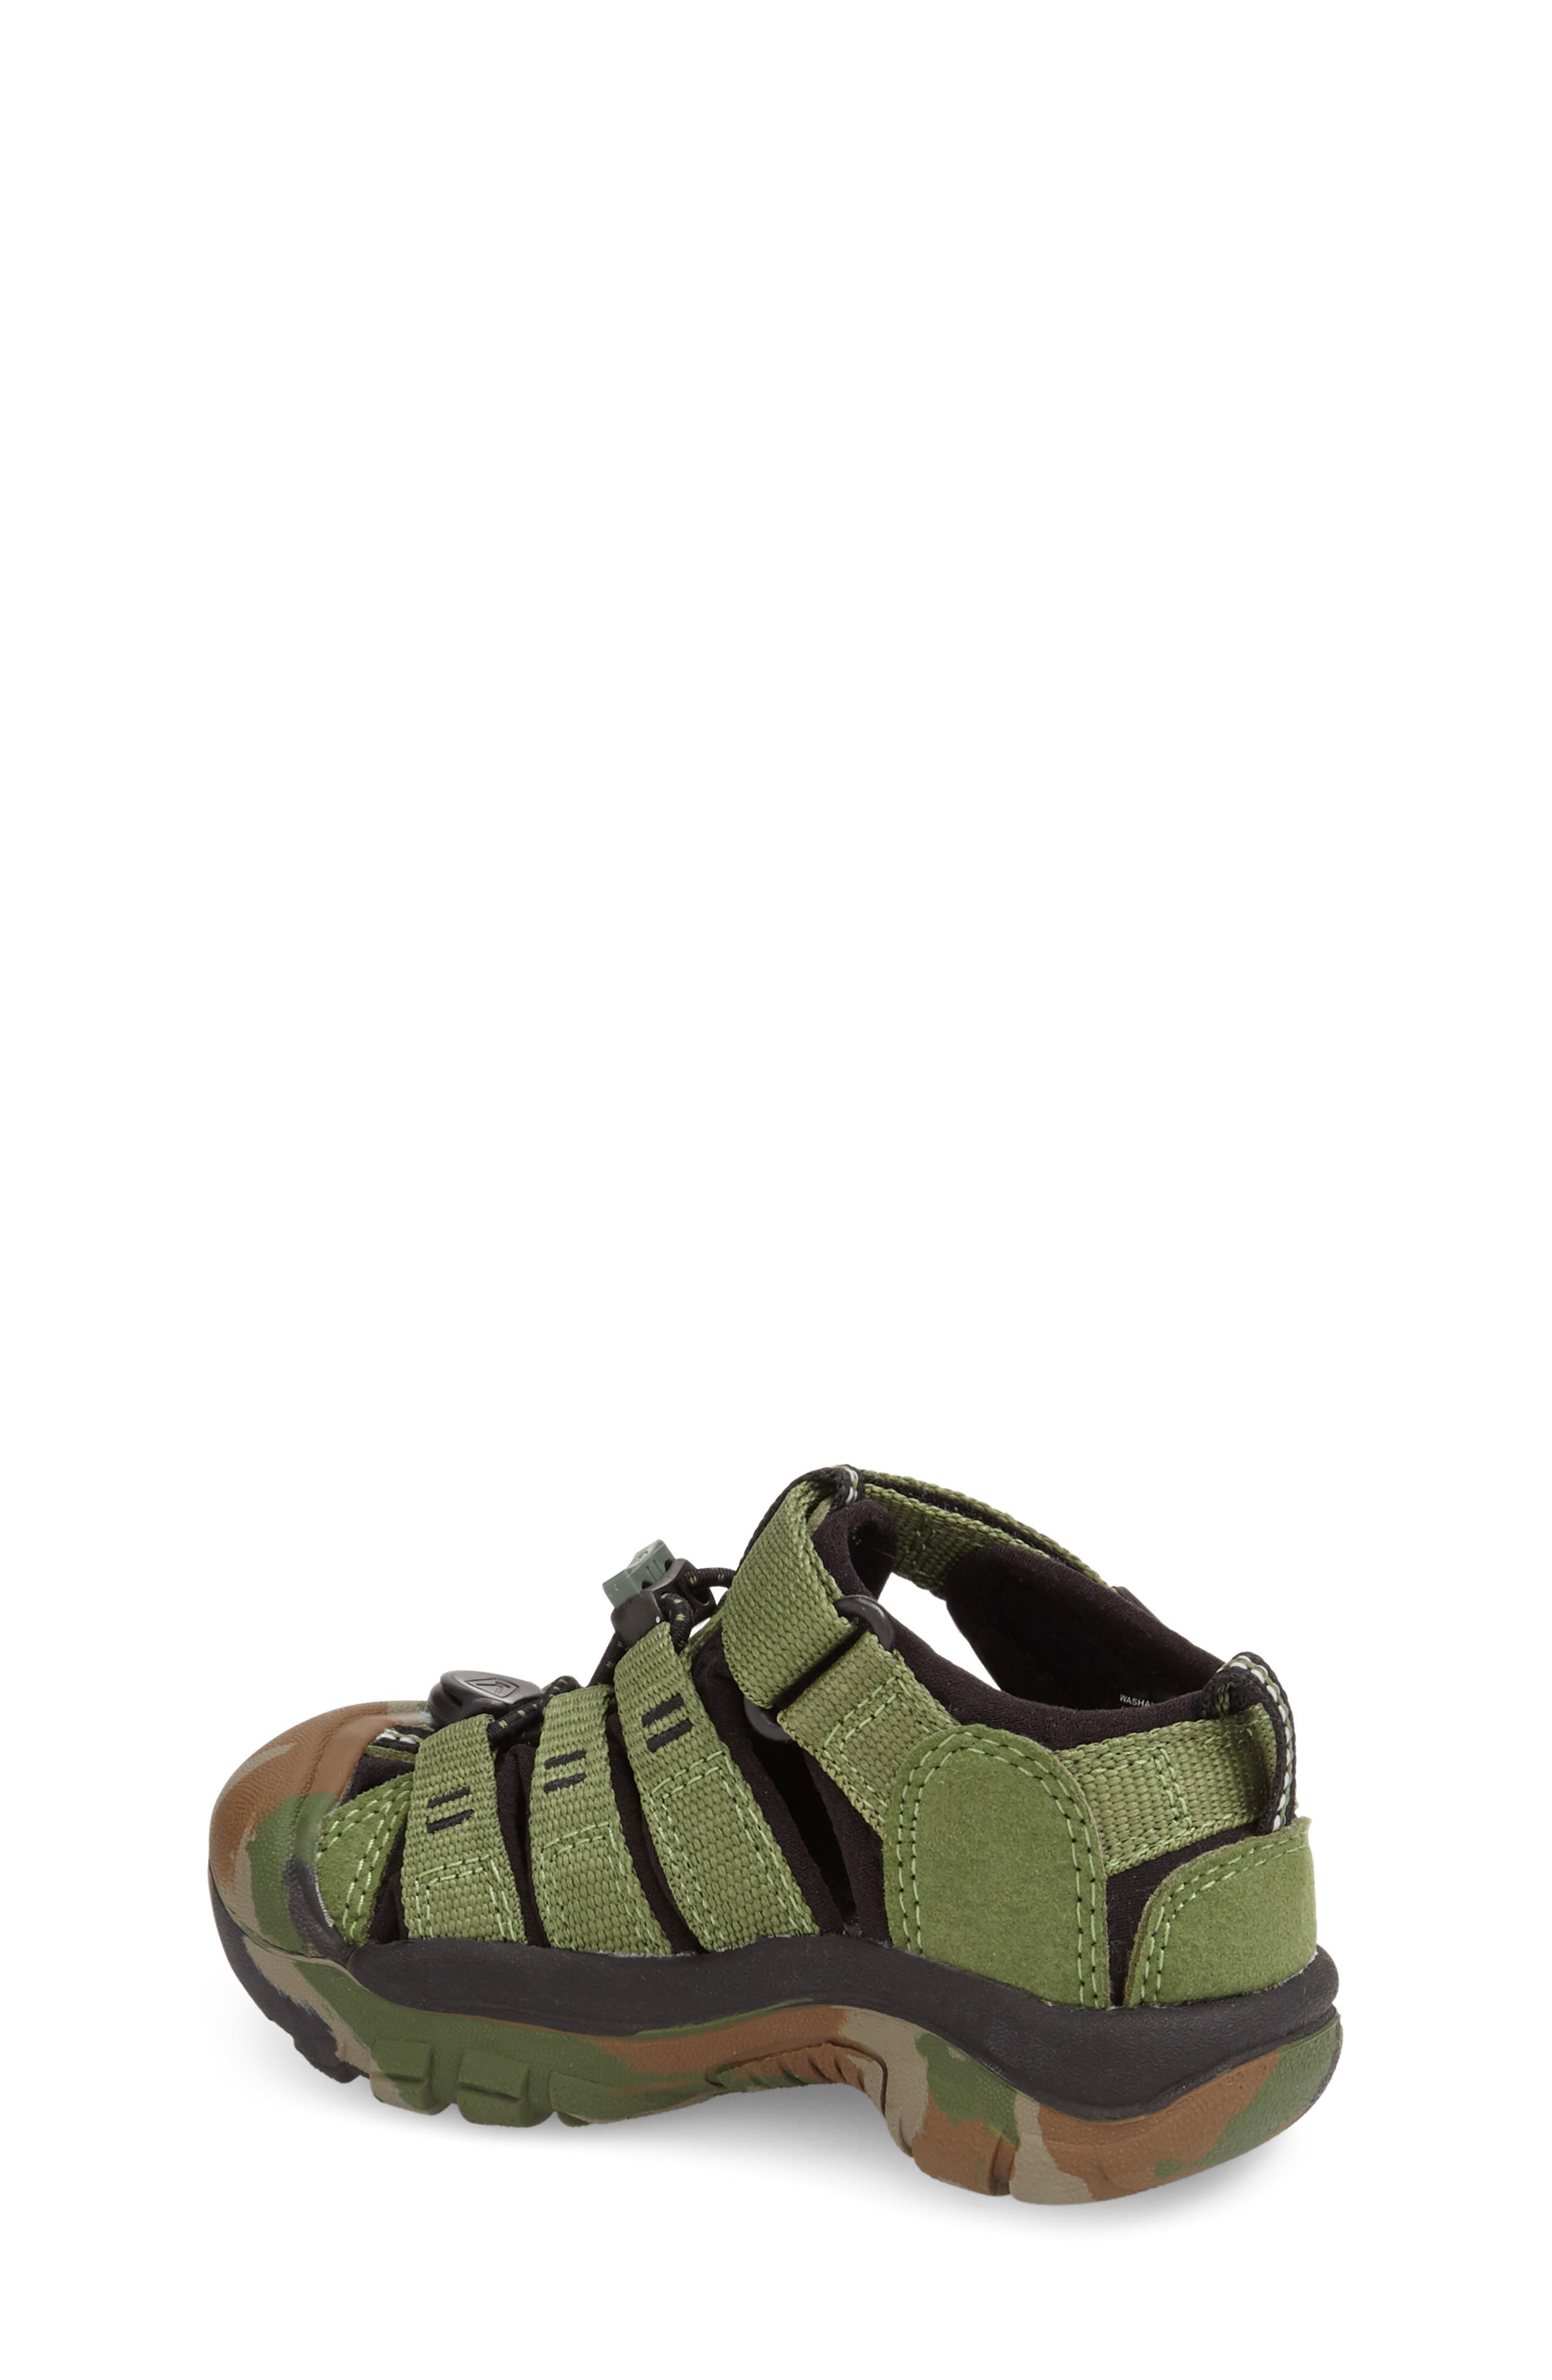 ,                             'Newport H2' Water Friendly Sandal,                             Alternate thumbnail 295, color,                             300